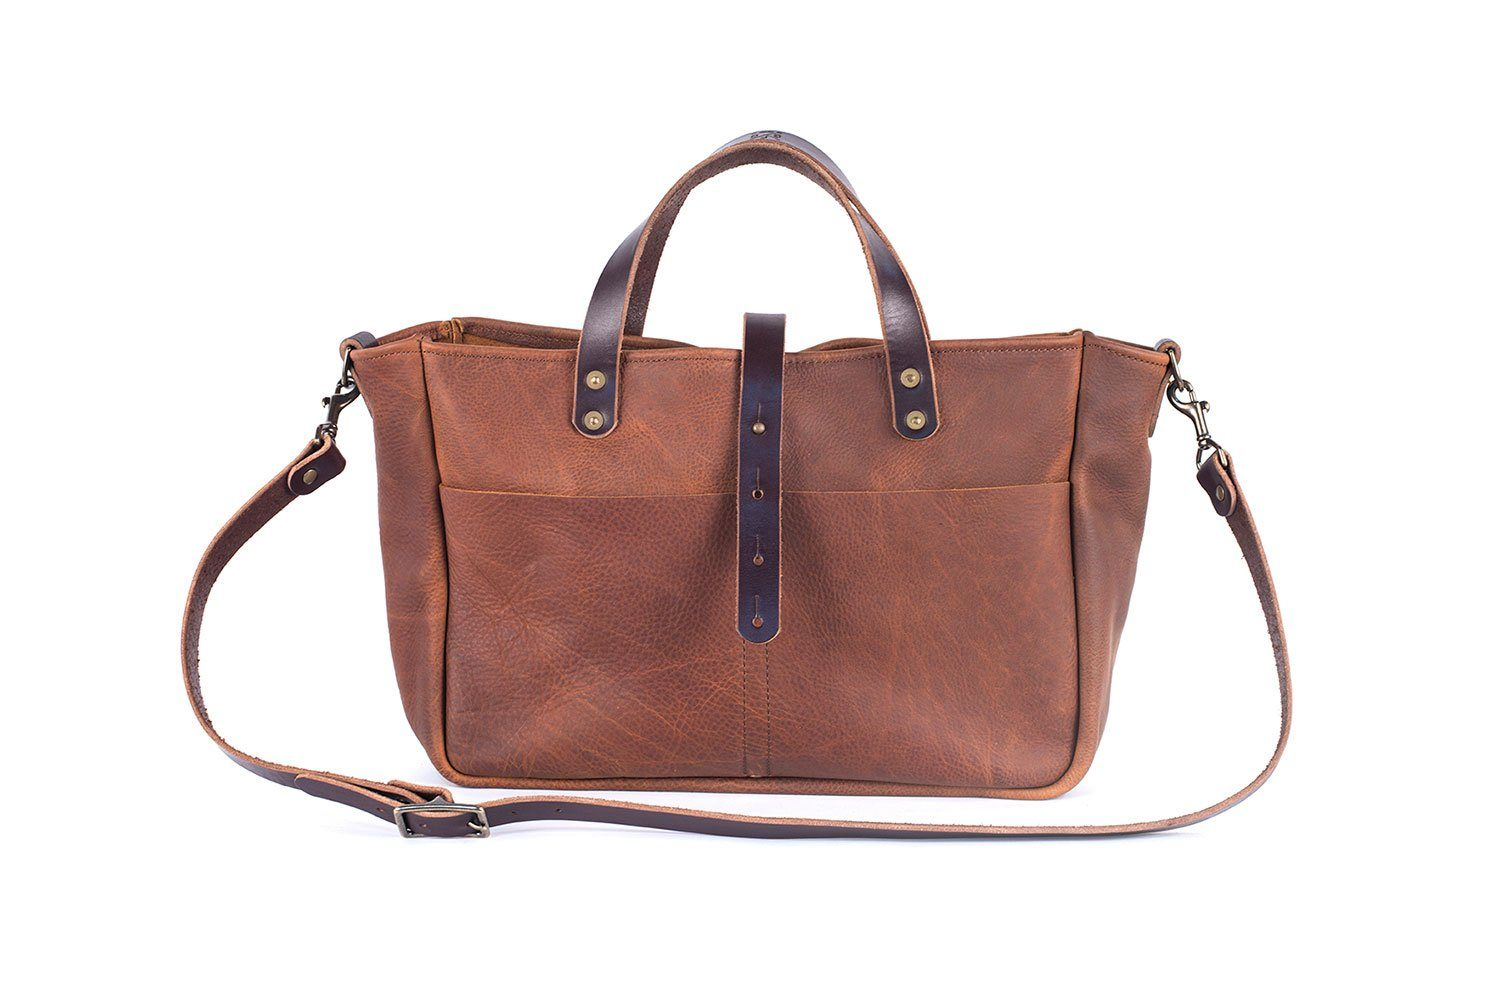 BUCHANAN LEATHER TOTE BAG